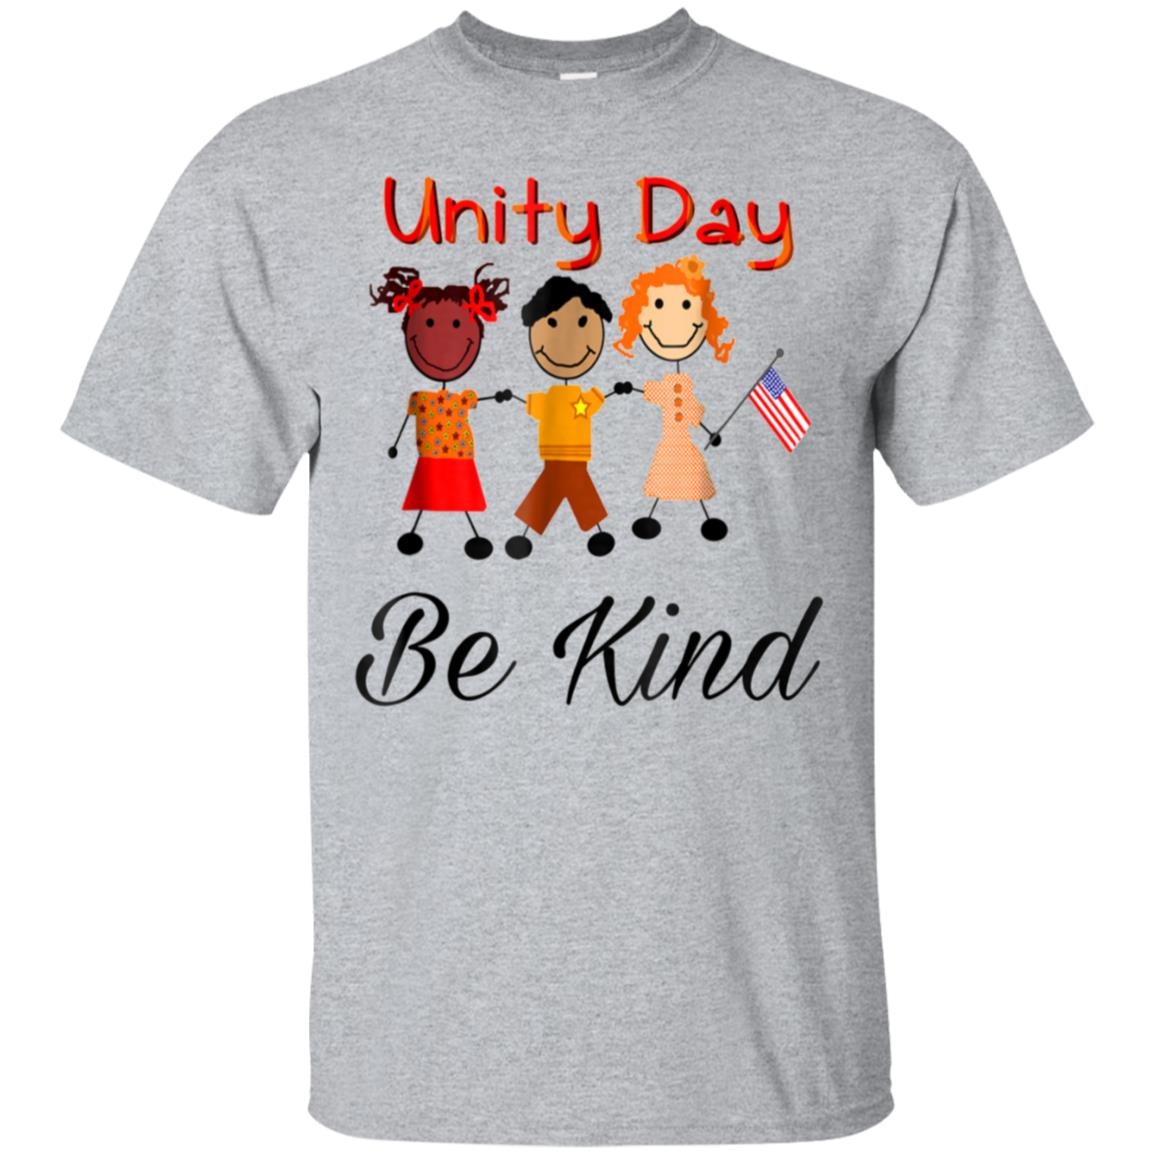 unity day Orange t shirt 99promocode